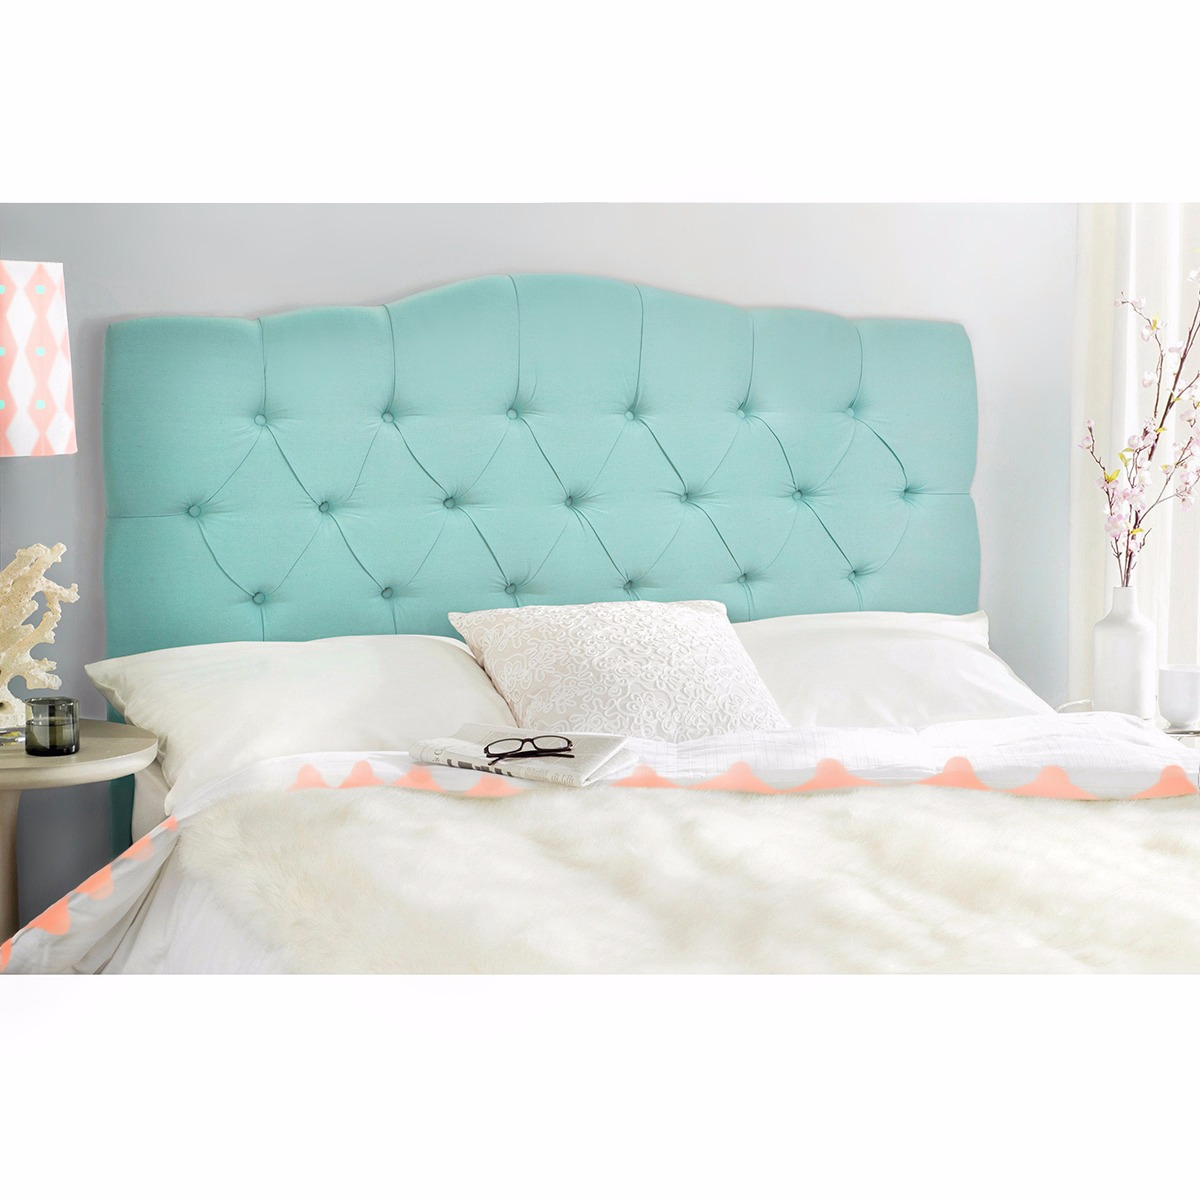 Queen full Upholstered Headboard bed frame Button Bedroom Furniture ...